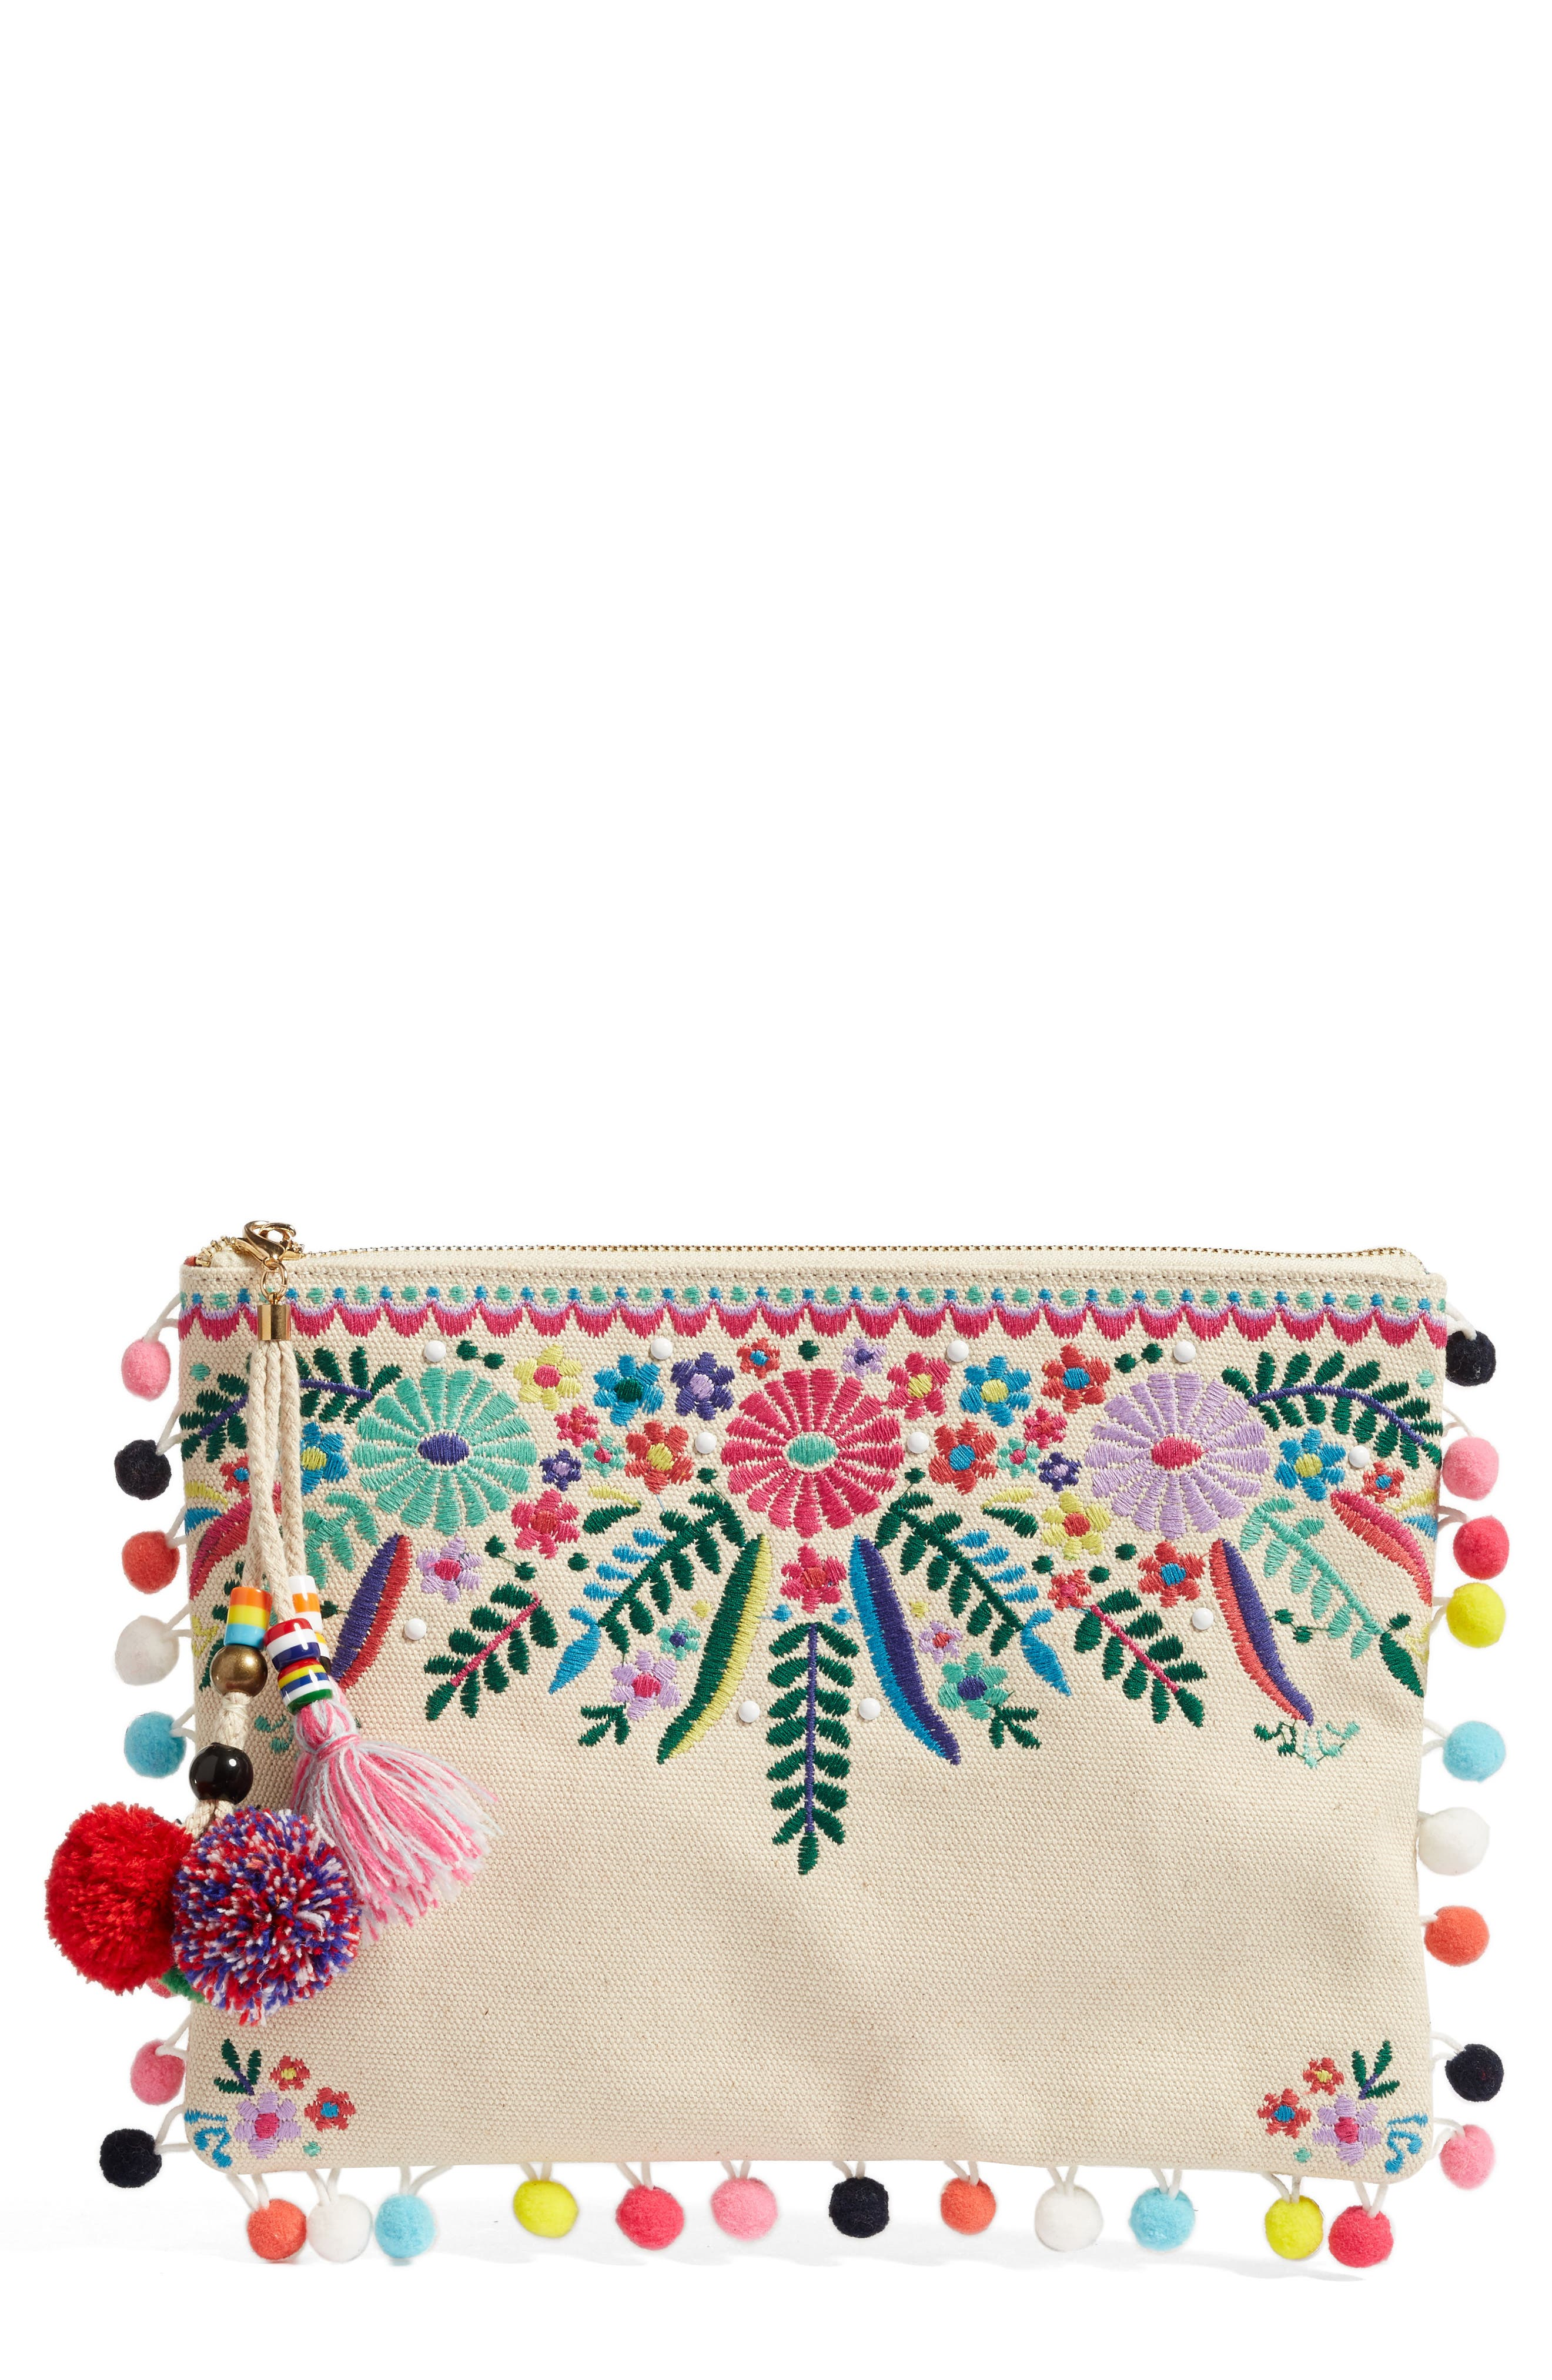 Alternate Image 1 Selected - Steven by Steve Madden Embroidered Clutch